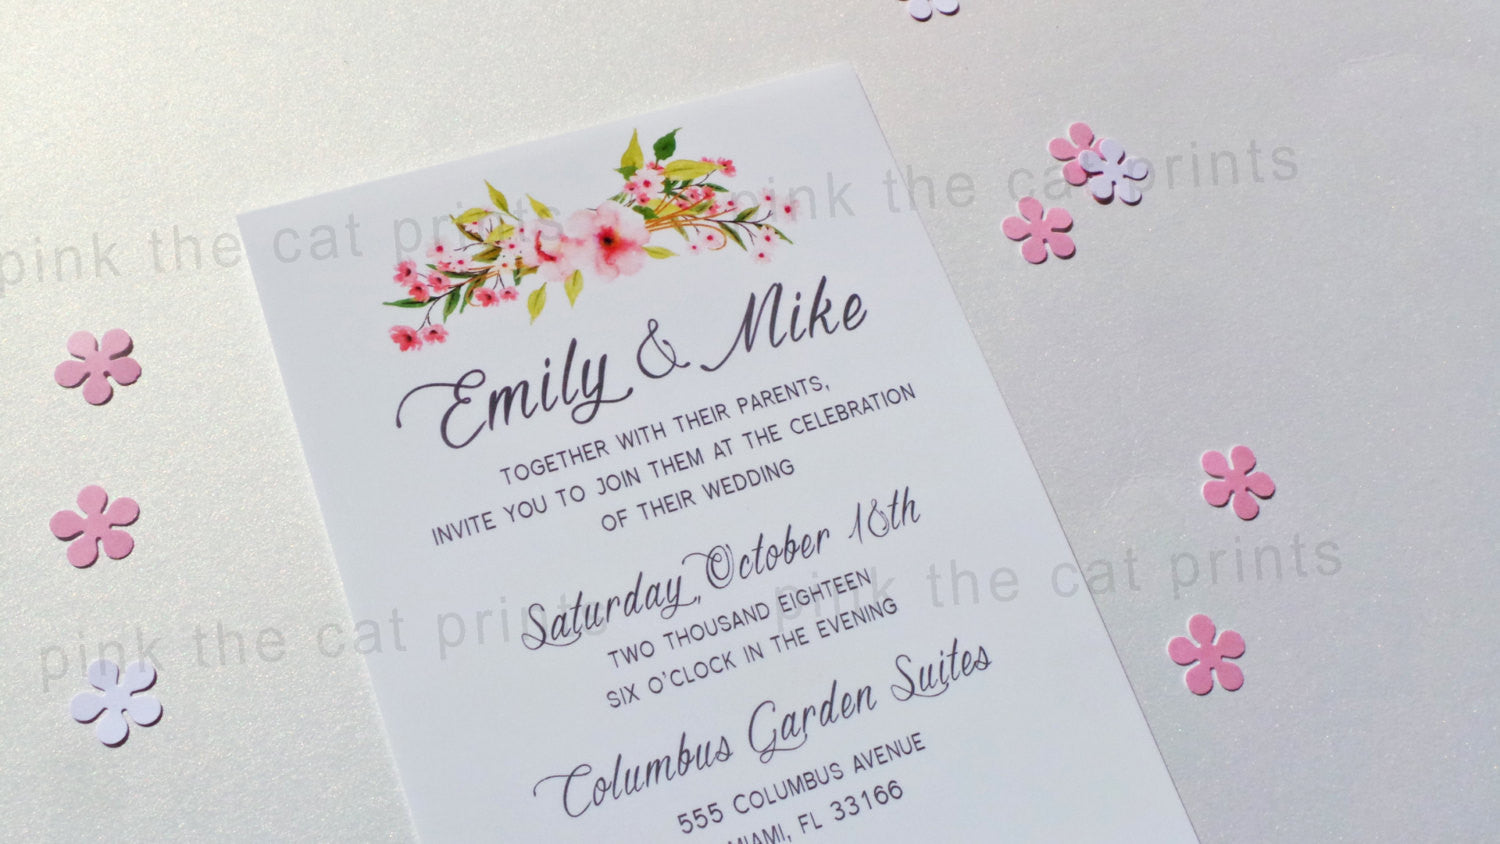 Boho Wedding Invitation Bohemian Pink Mint Floral – Pink The Cat